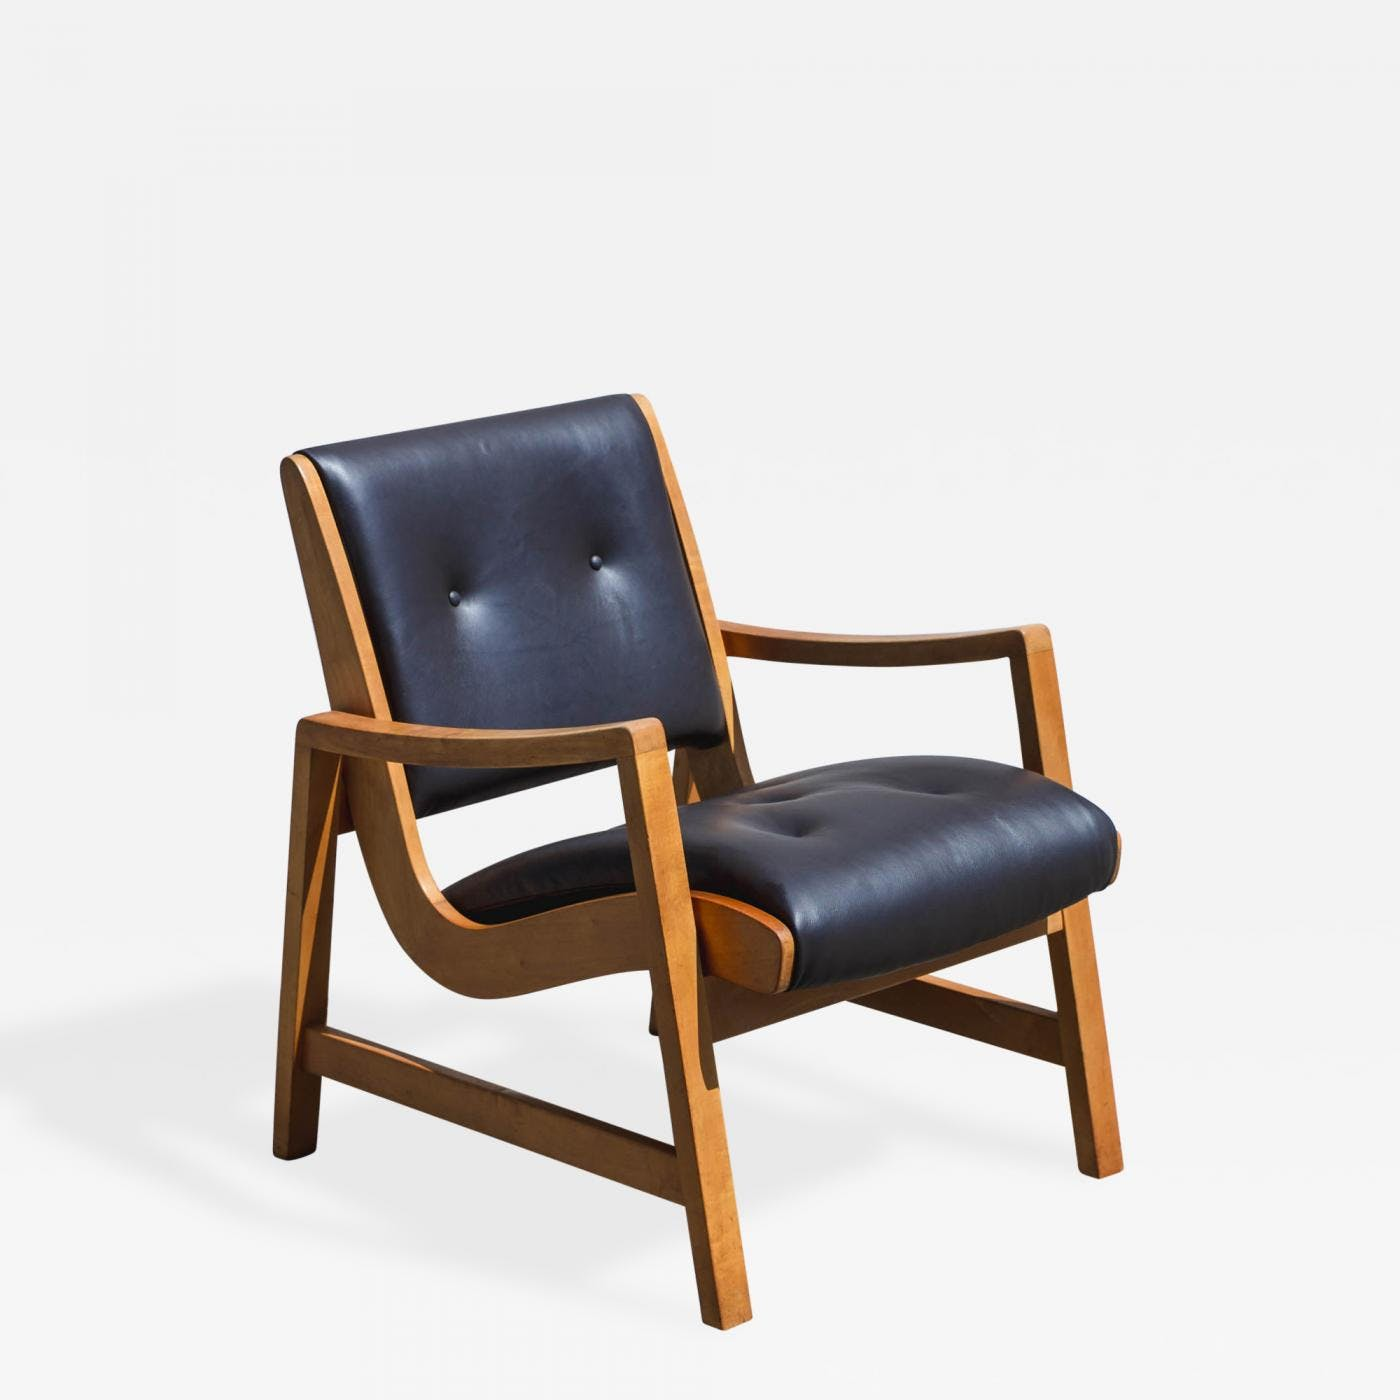 Leather Lounge Jens Risom Beech Wood And Leather Lounge Chair